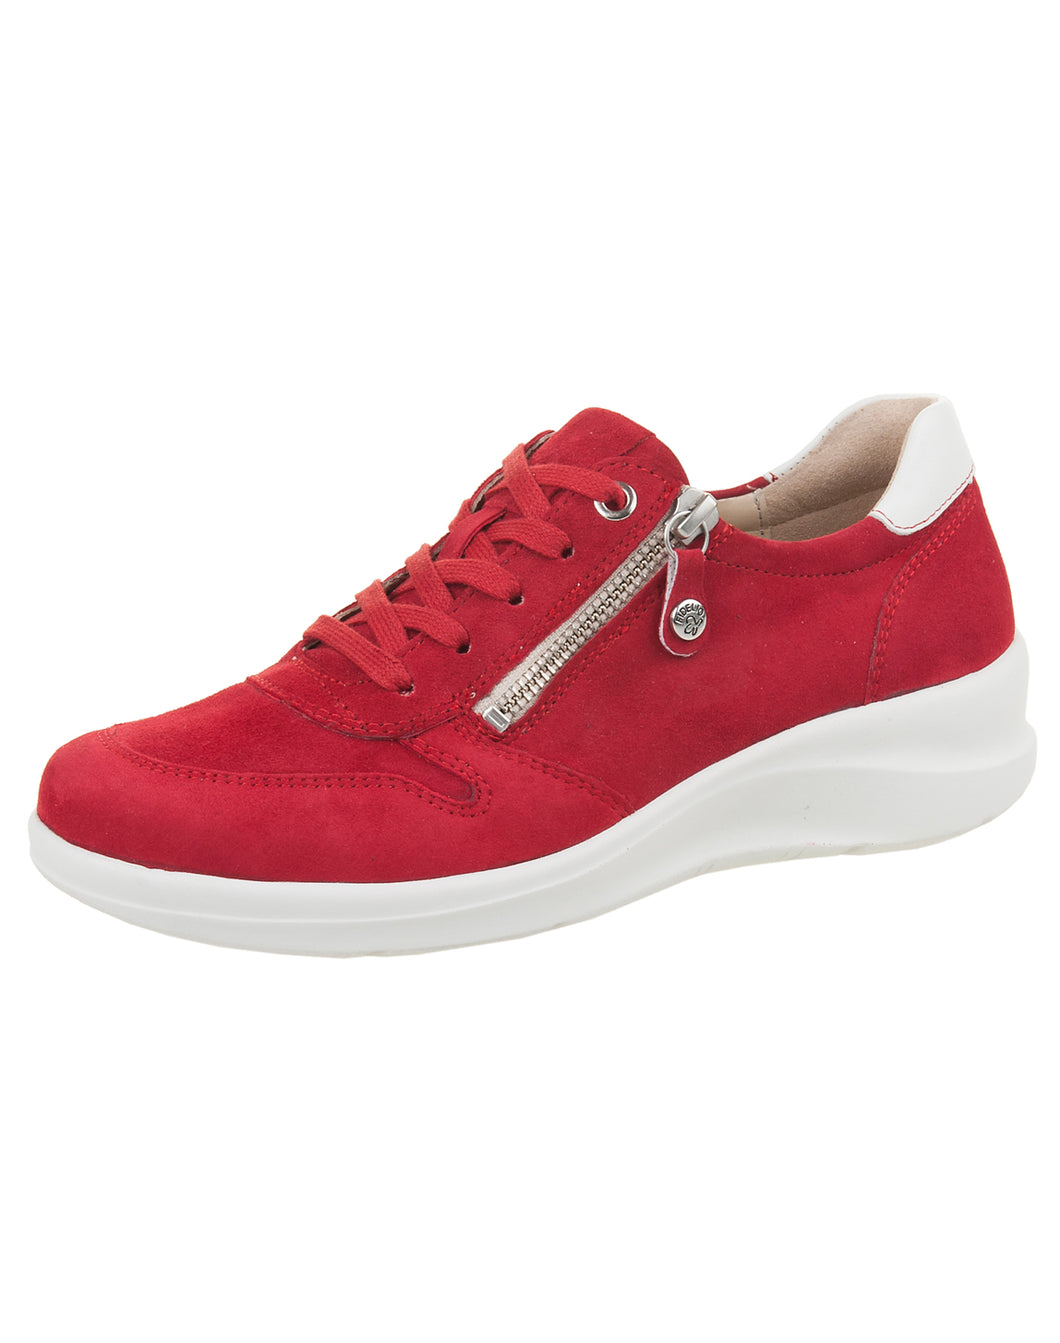 FIDELIO 546104 HARMONY ZIP LACE SHOE 4.5-7.5H  - RED AMALFI